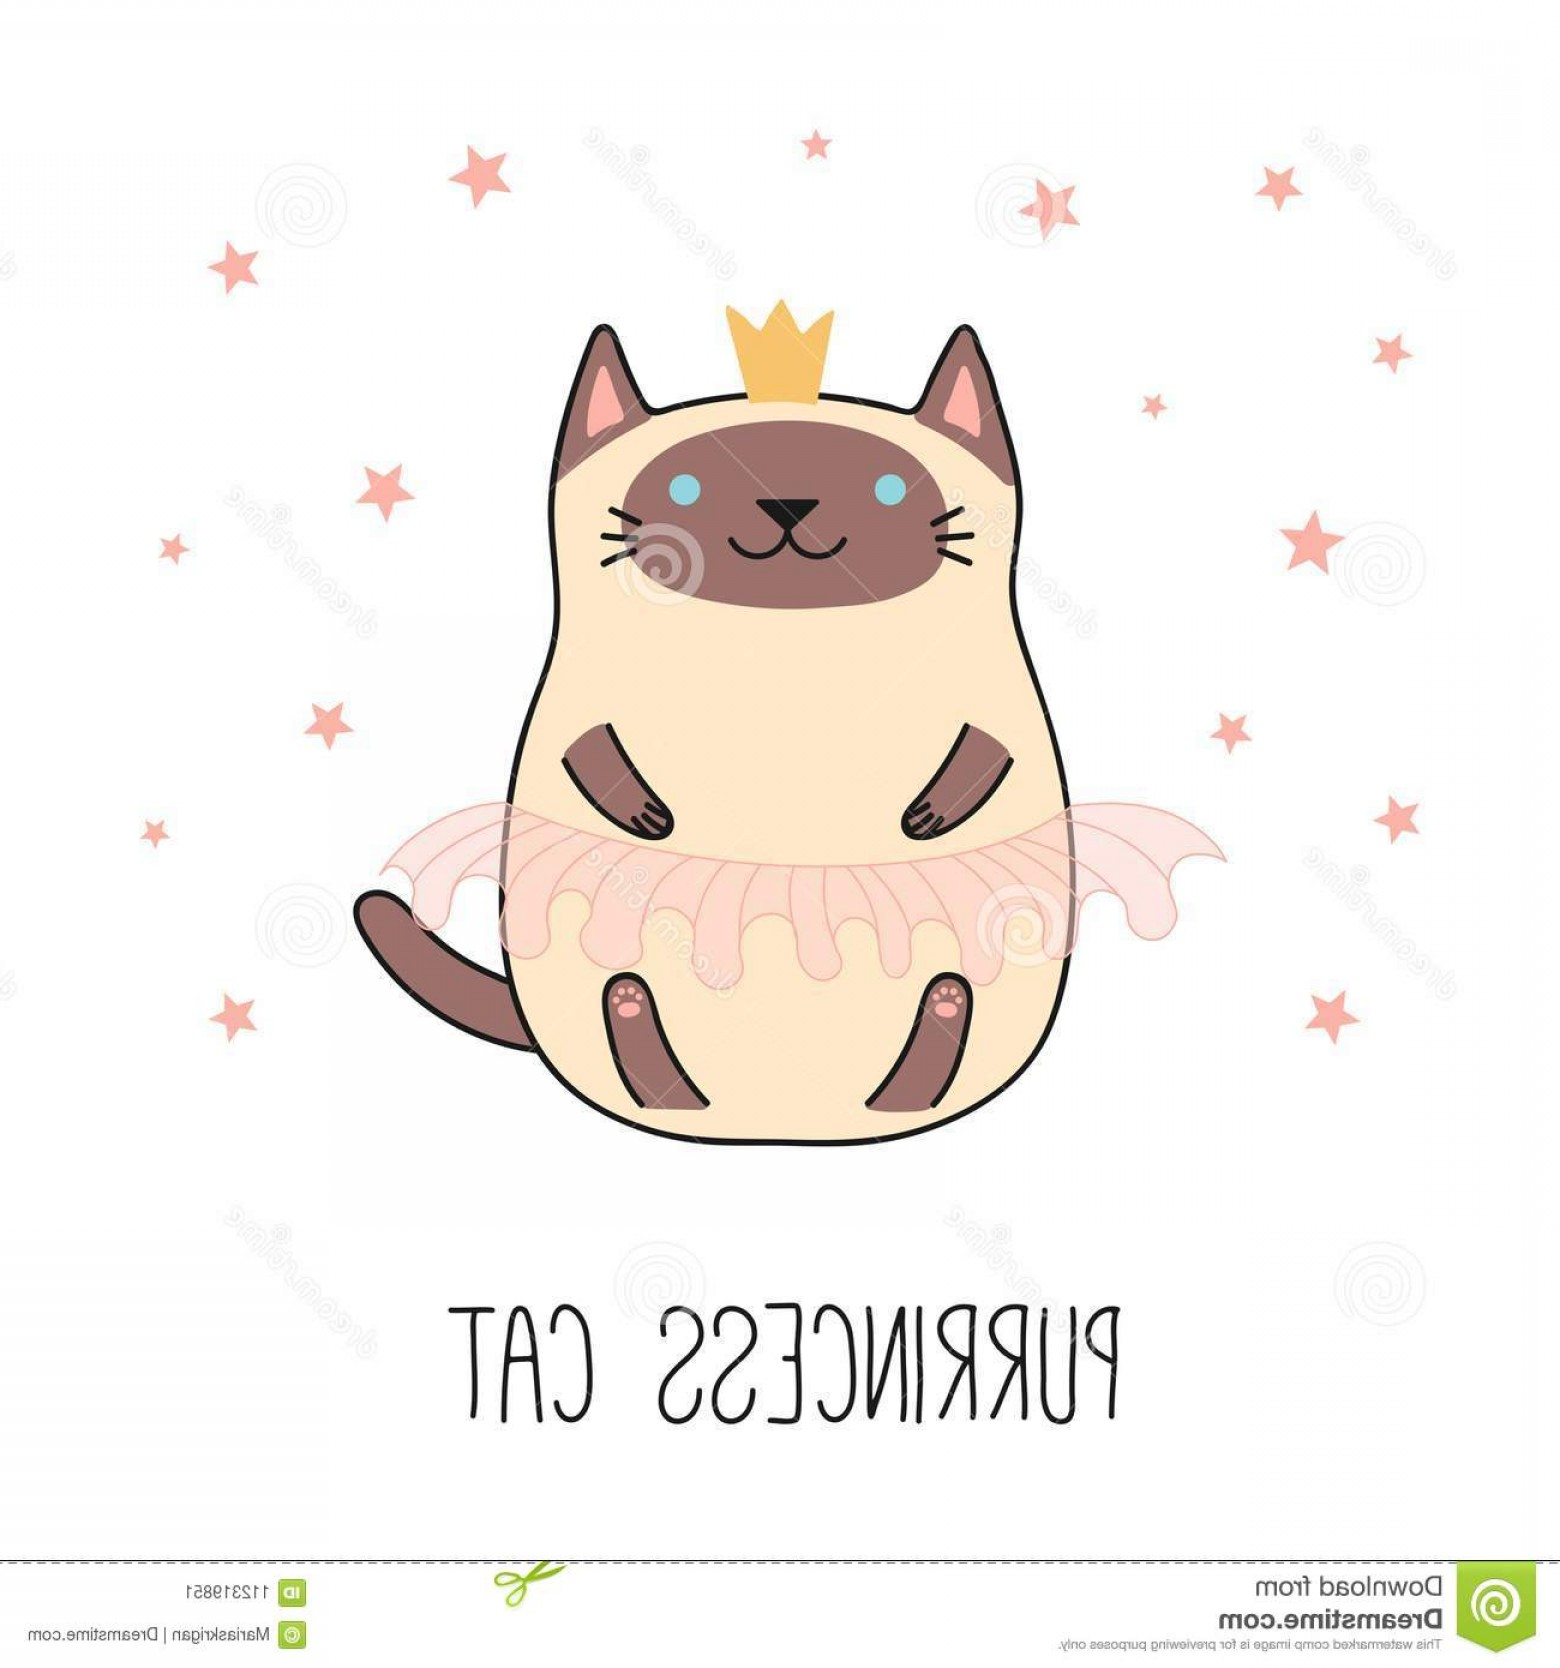 Siamese Cat Vector Transparent Background: Cute Princess Cat Hand Drawn Vector Illustration Kawaii Funny Siamese Crown Pink Ballet Tutu Isolated Objects White Image